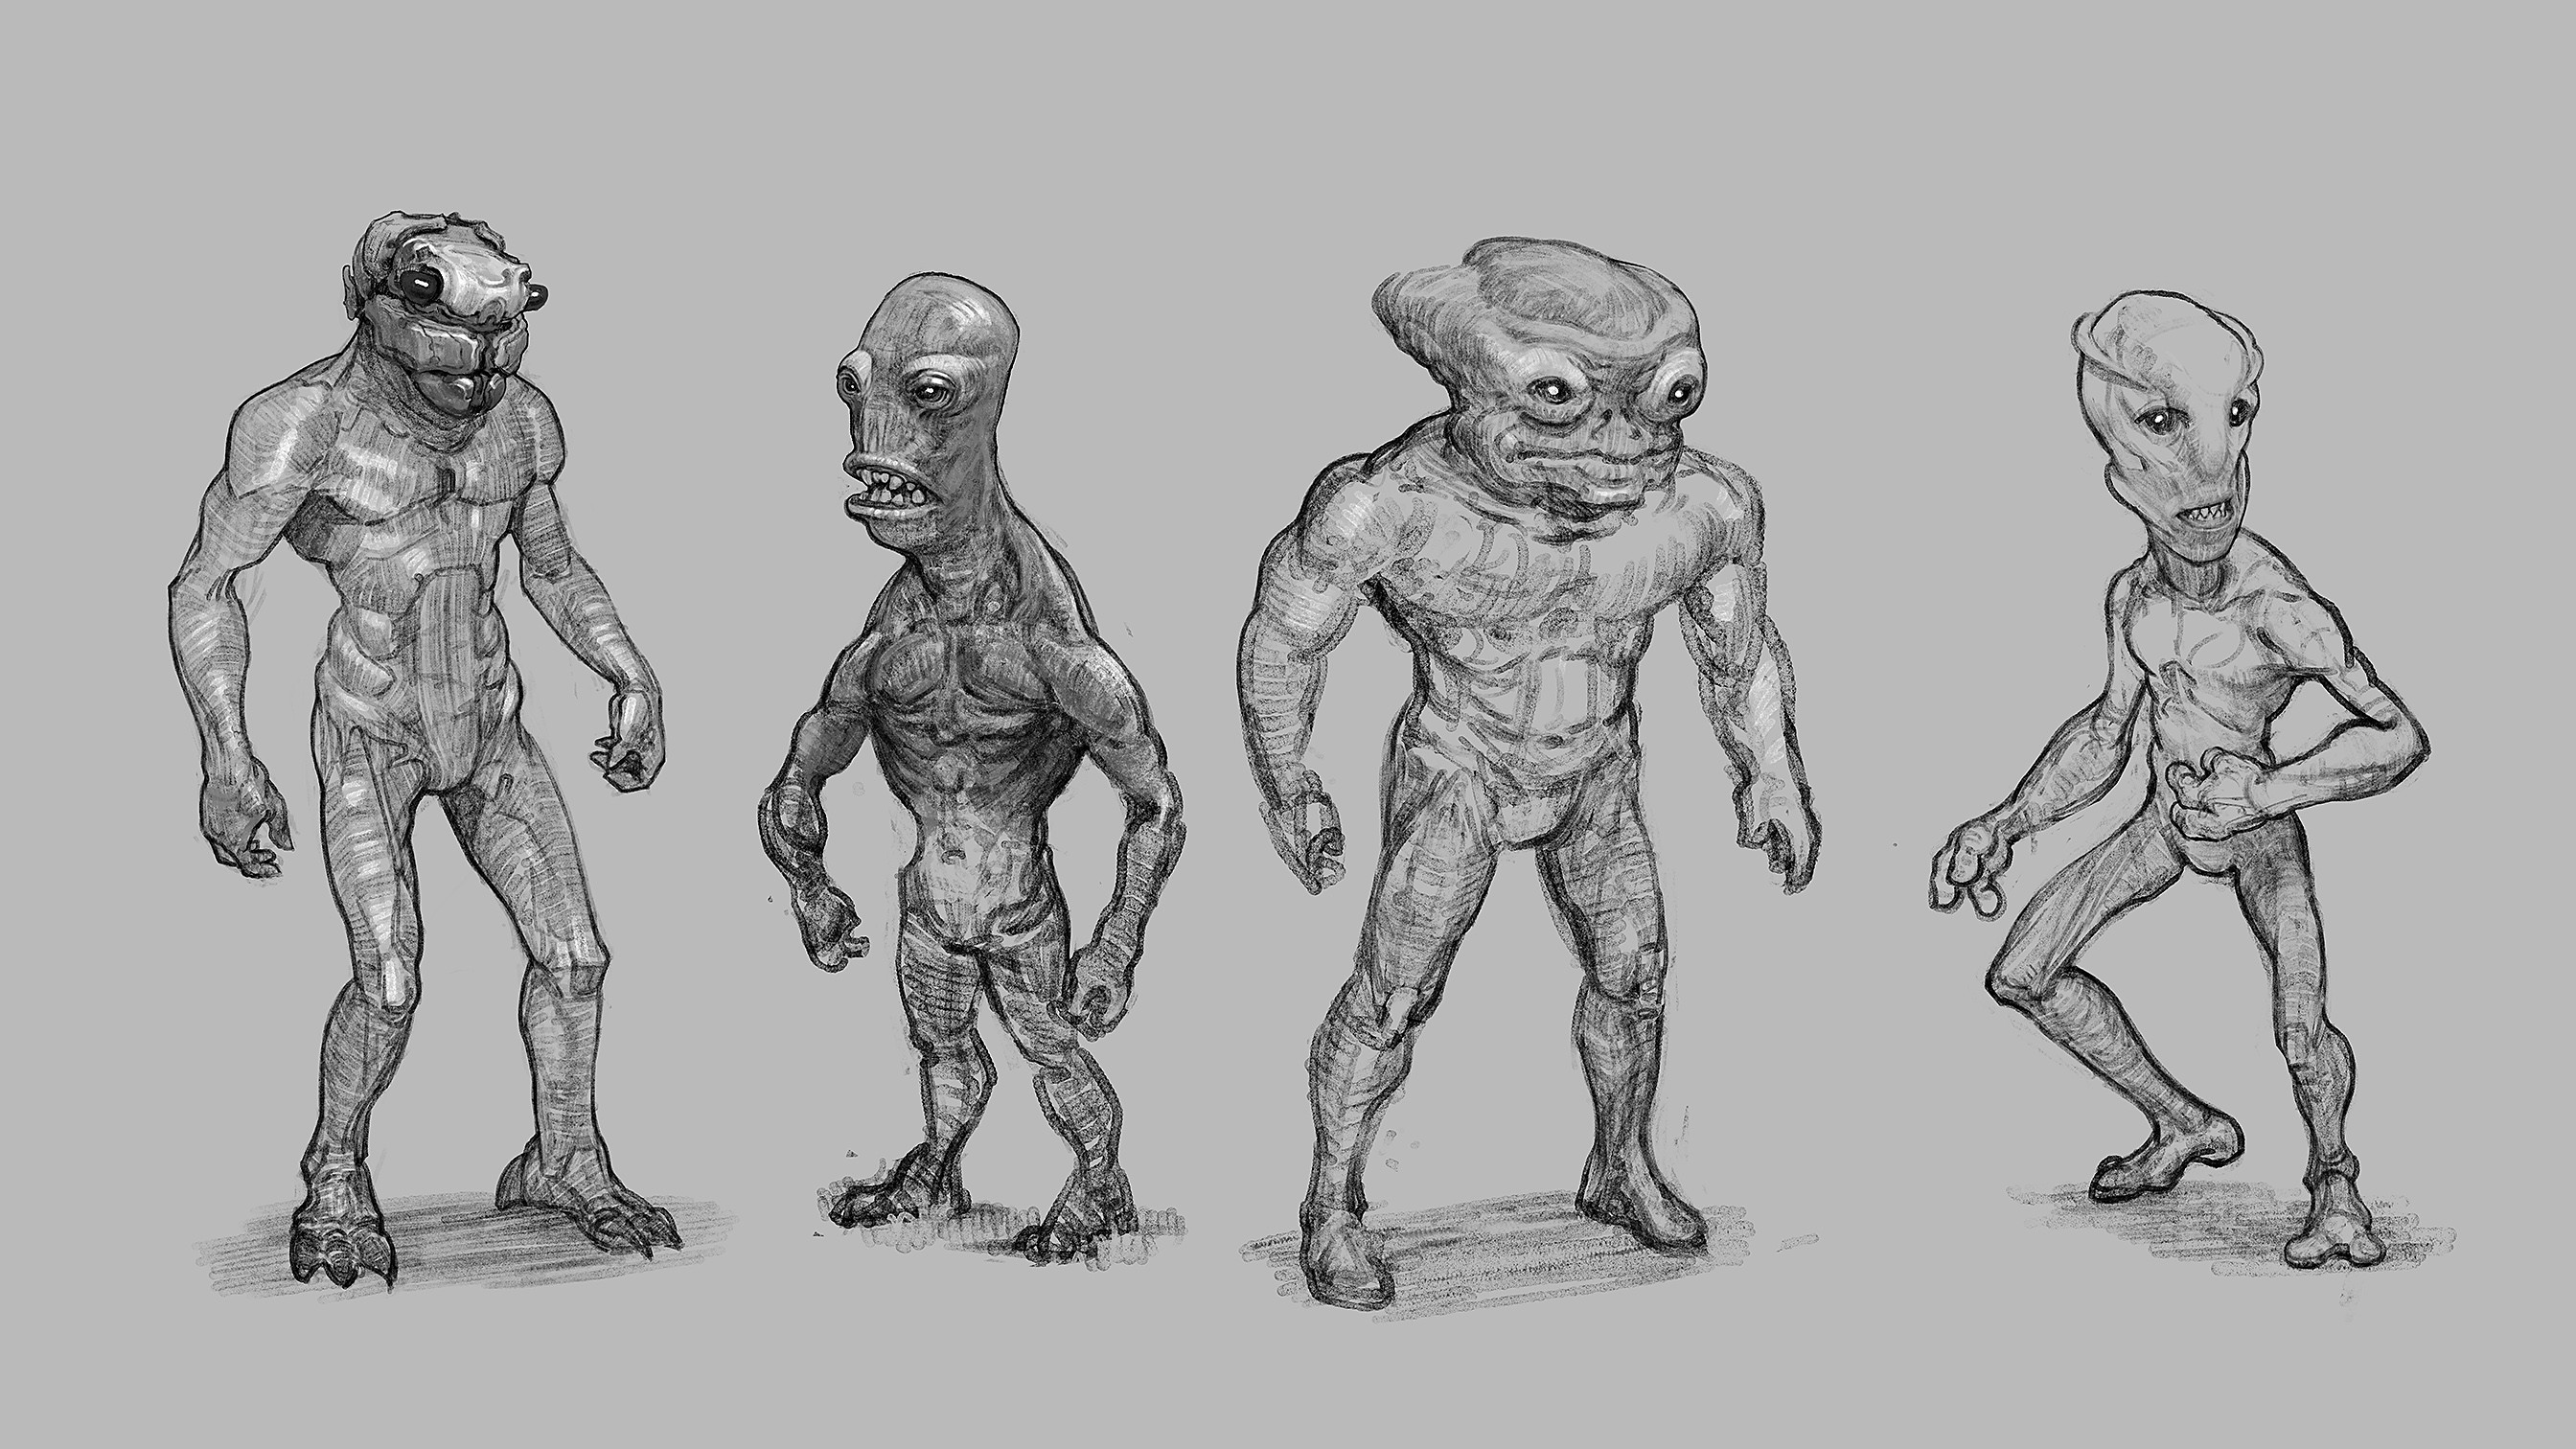 Some alien buggers that might inhabit this  world.